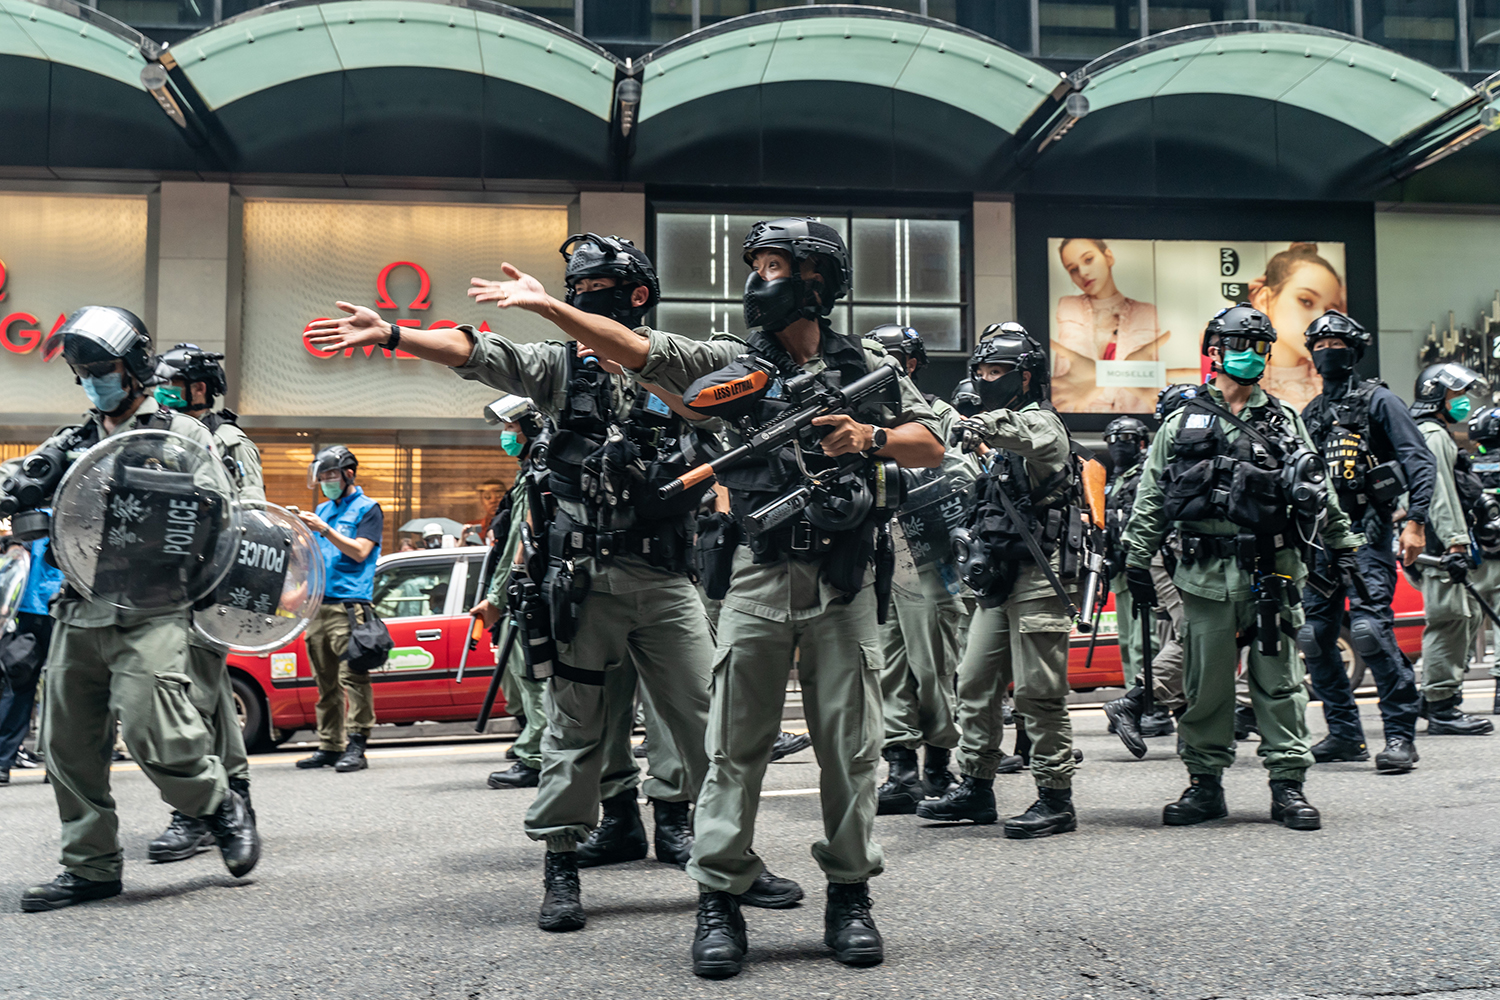 foreignpolicy.com - James Palmer - Hong Kong Is in Danger